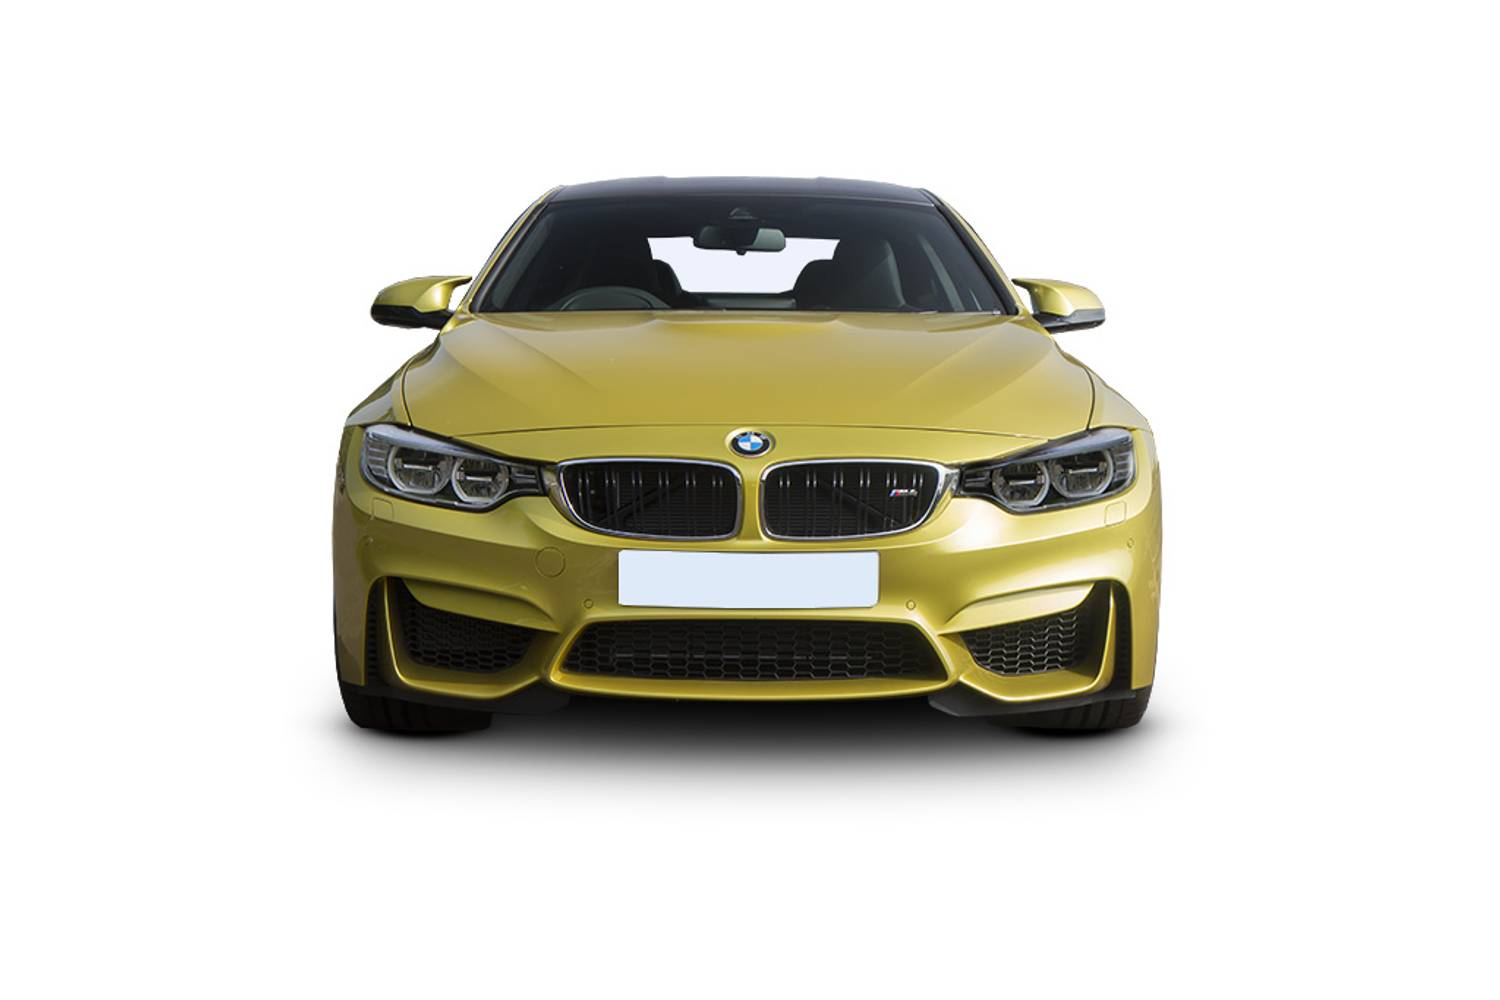 Bmw m4 coupe m4 2dr front